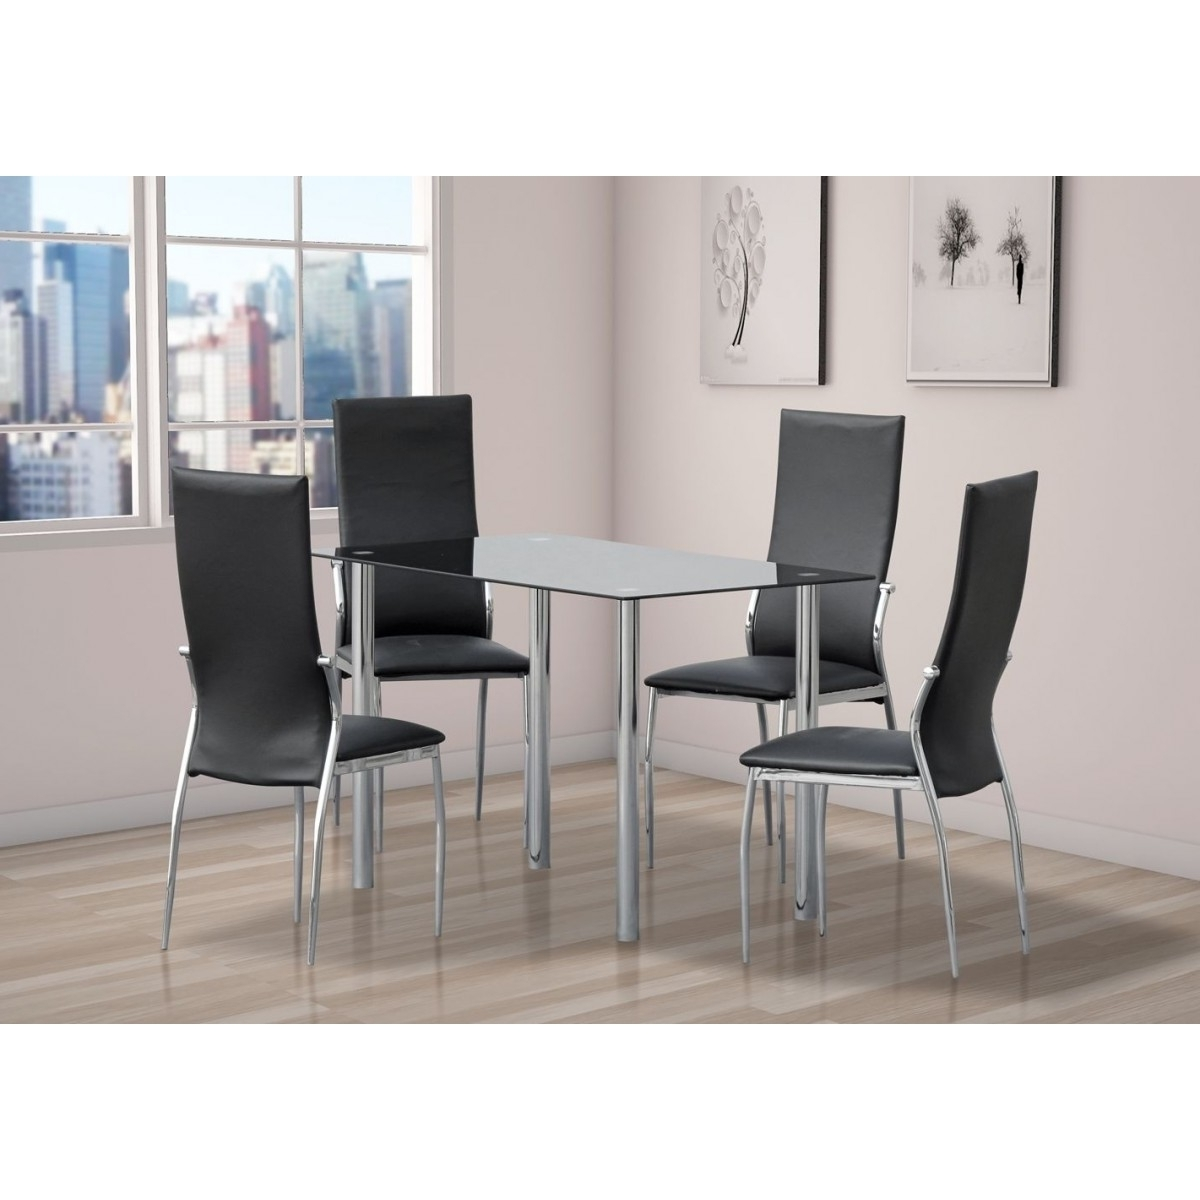 Glass Dining Table With 4 Or 6 Chairs – Home Done Inside Newest Glass Dining Tables 6 Chairs (Gallery 22 of 25)